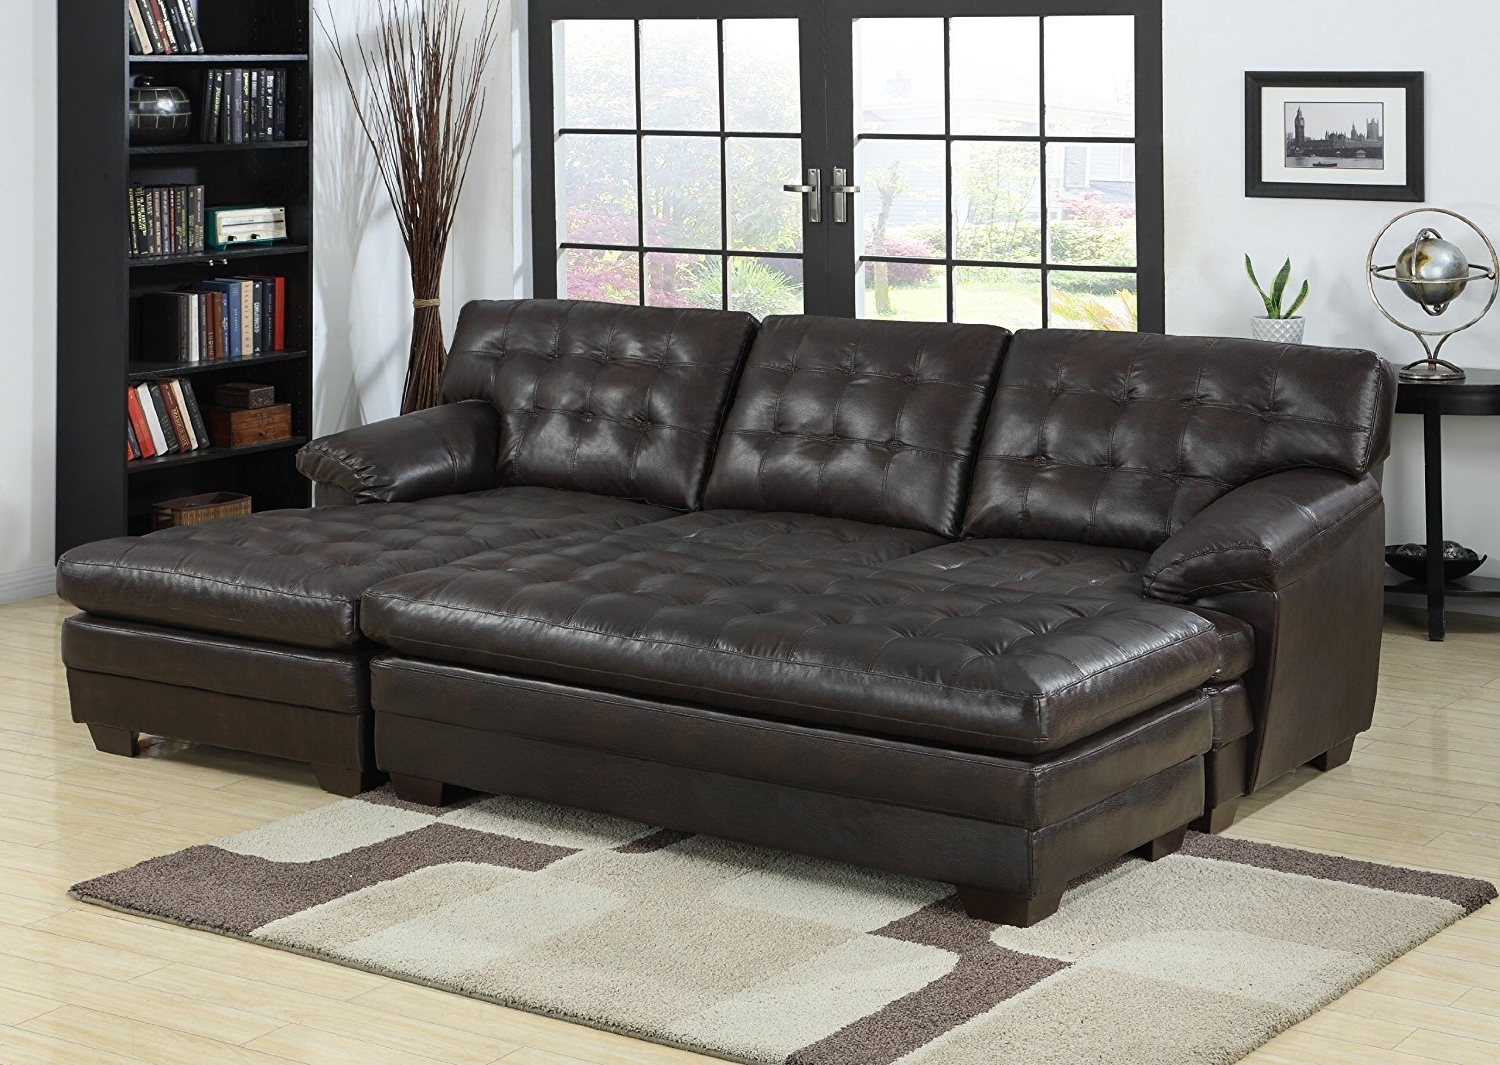 Current 2 Piece Sectional Sofas With Chaise Throughout Amazon: Homelegance 9739 Channel Tufted 2 Piece Sectional Sofa (View 13 of 15)